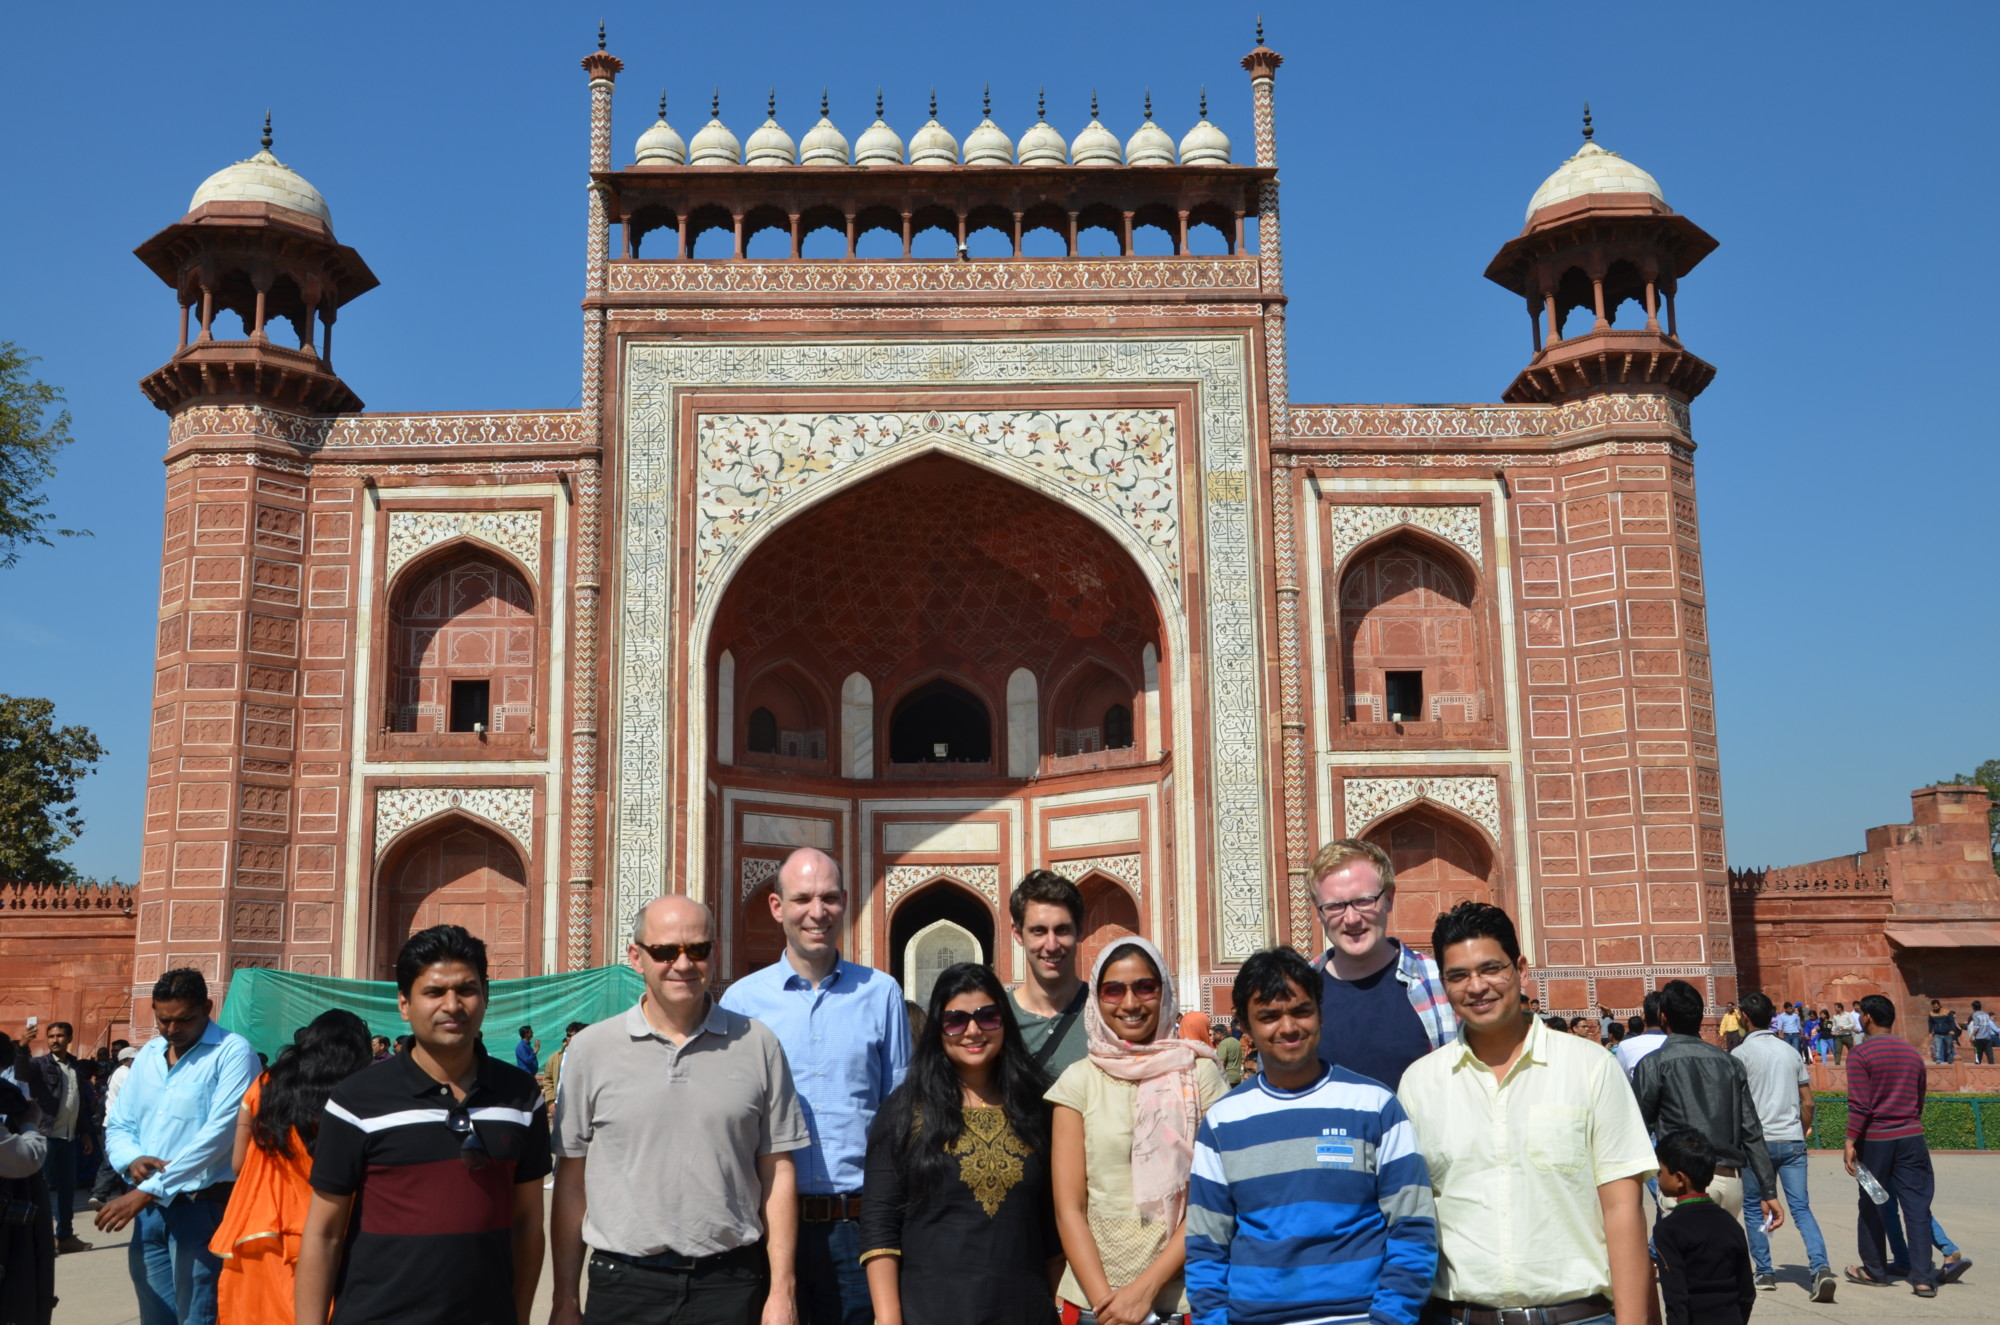 Group photo of nine researchers from the technical faculties at Friedrich-Alexander-Universität Erlangen-Nürnberg and the Indian Institute of Technology Delhi visiting Humayun's Tomb.